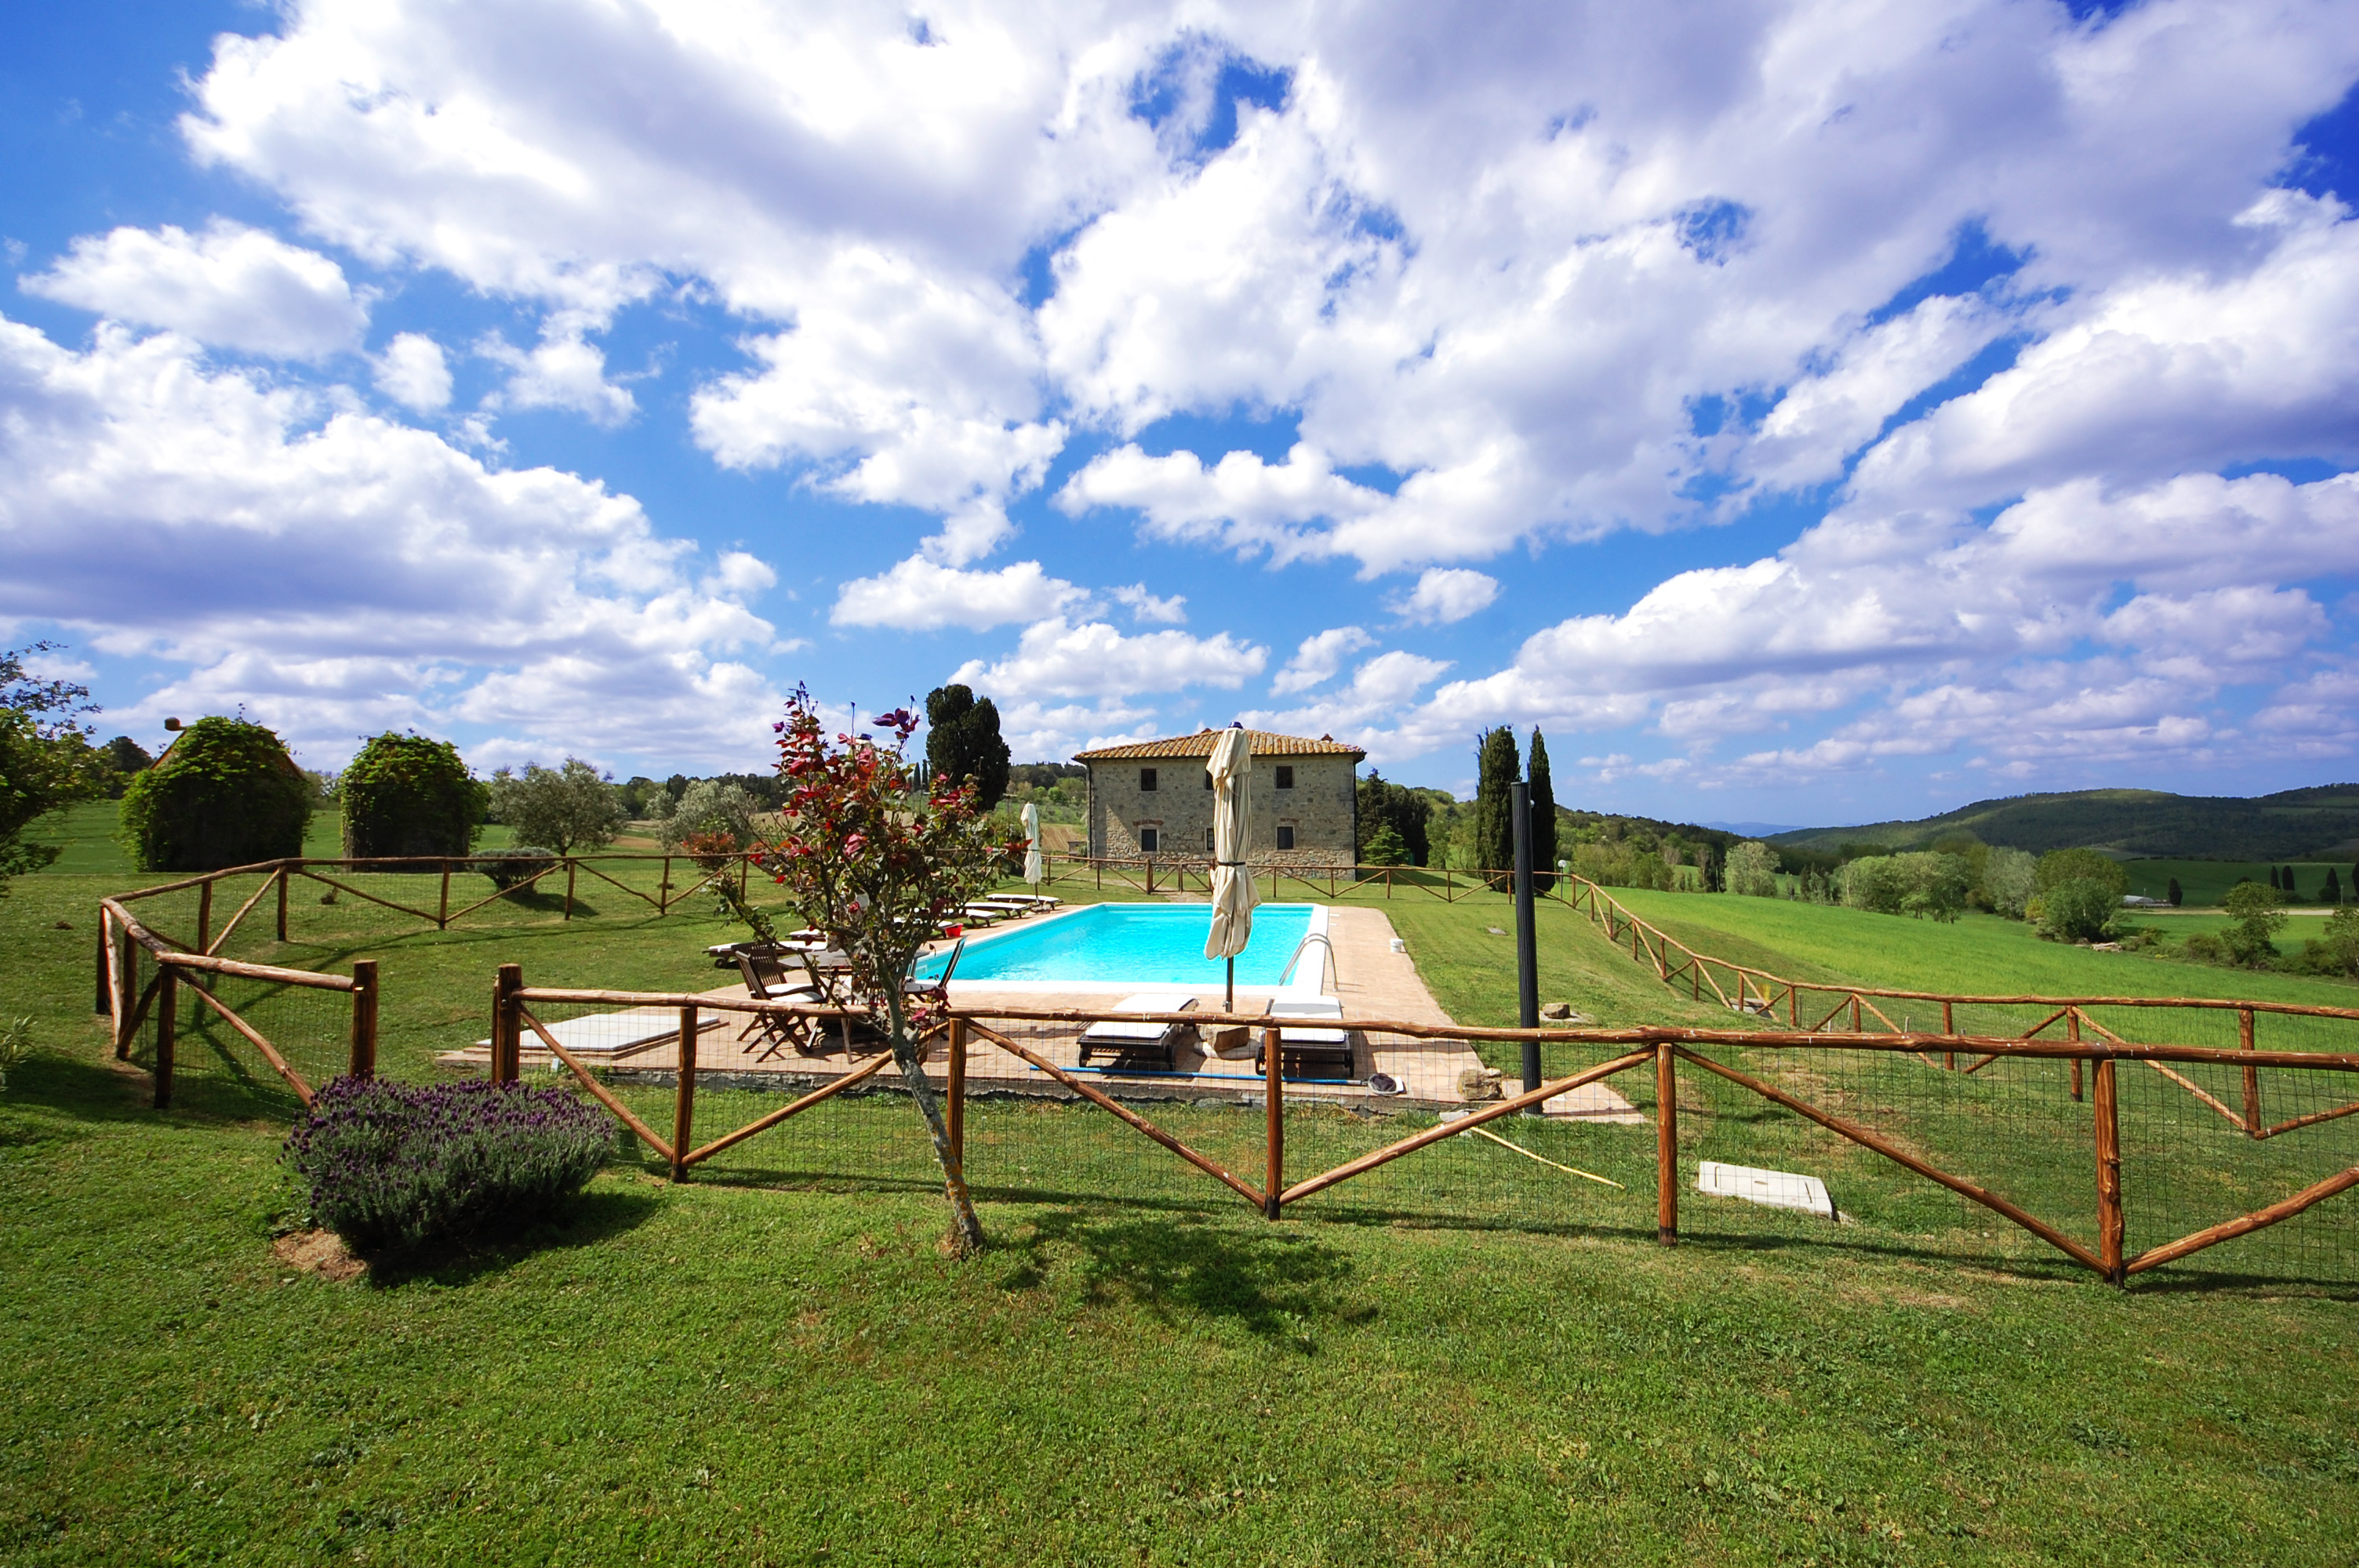 rent villa swimming pool tuscany